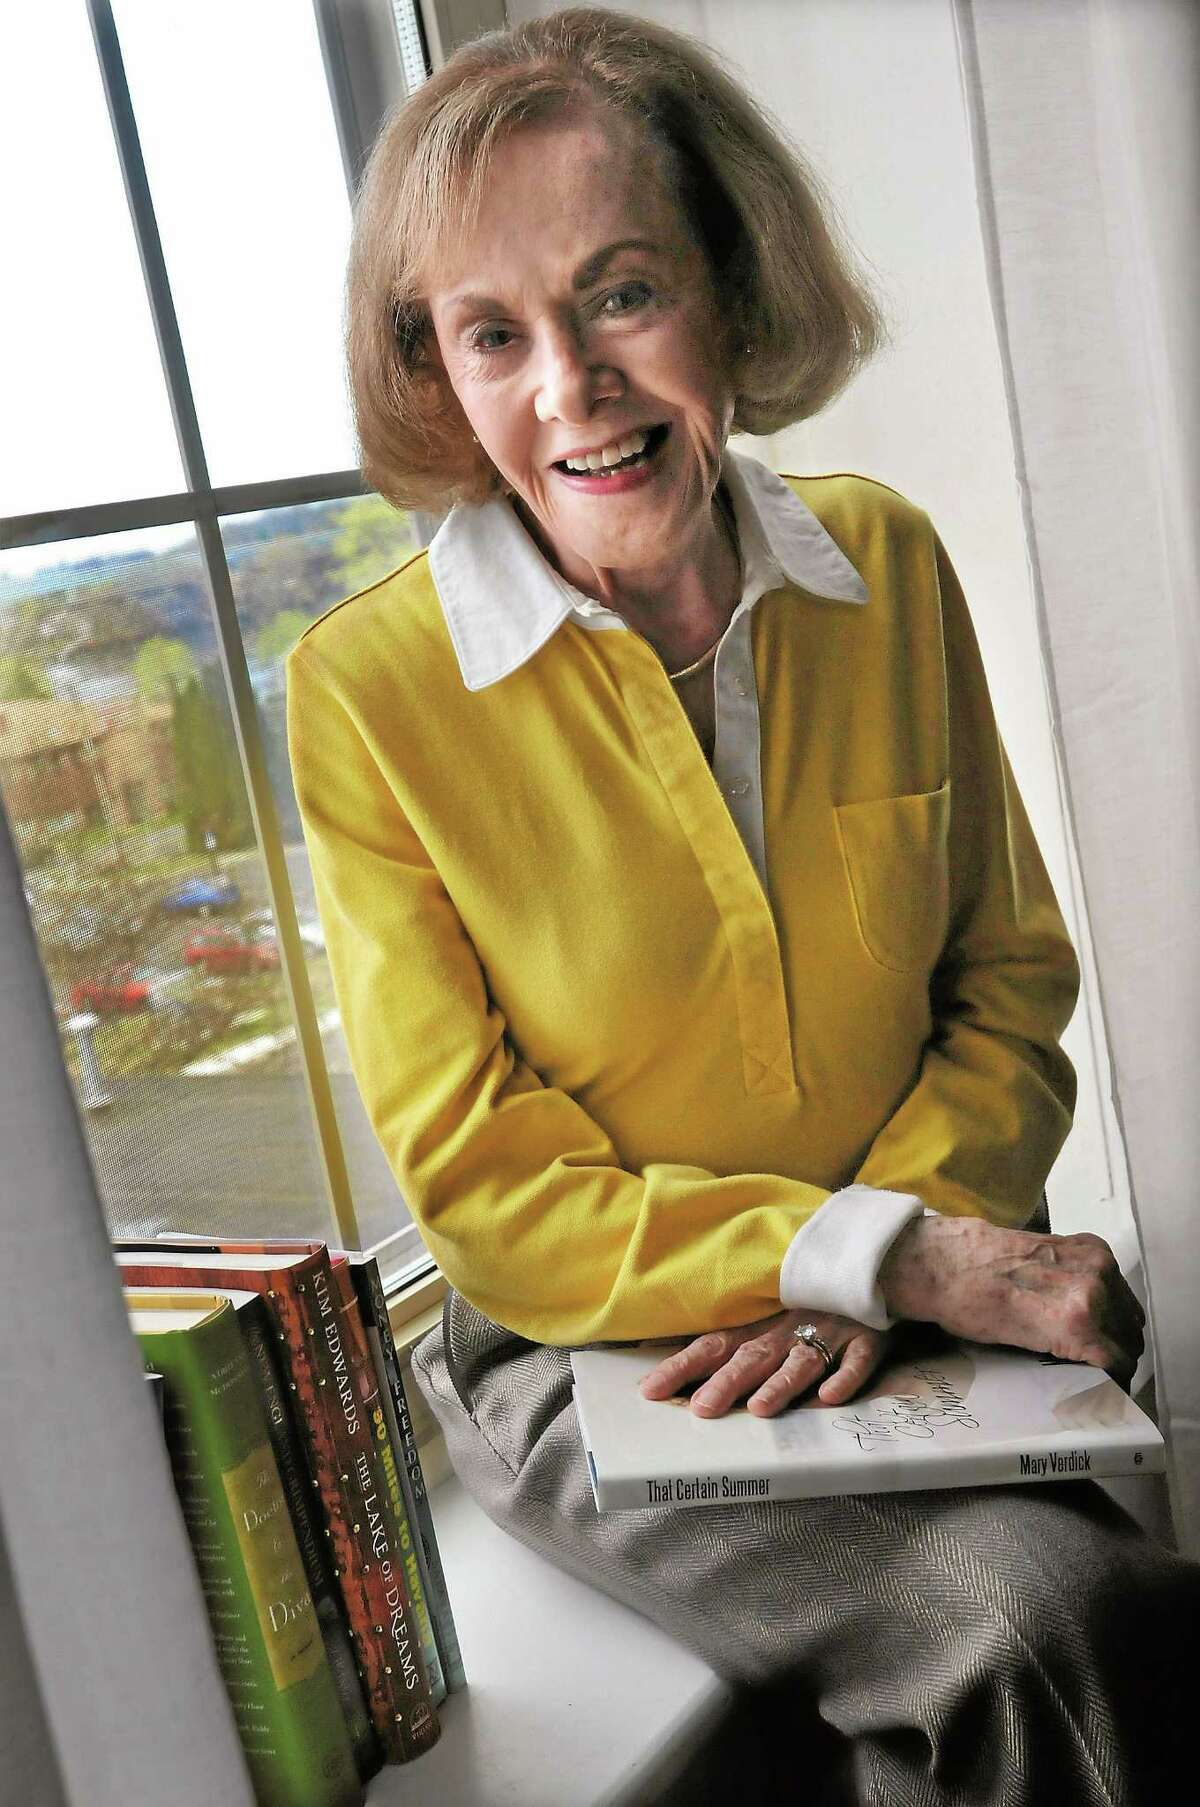 Author Mary Verdick is seen in this April 2011 file photo.